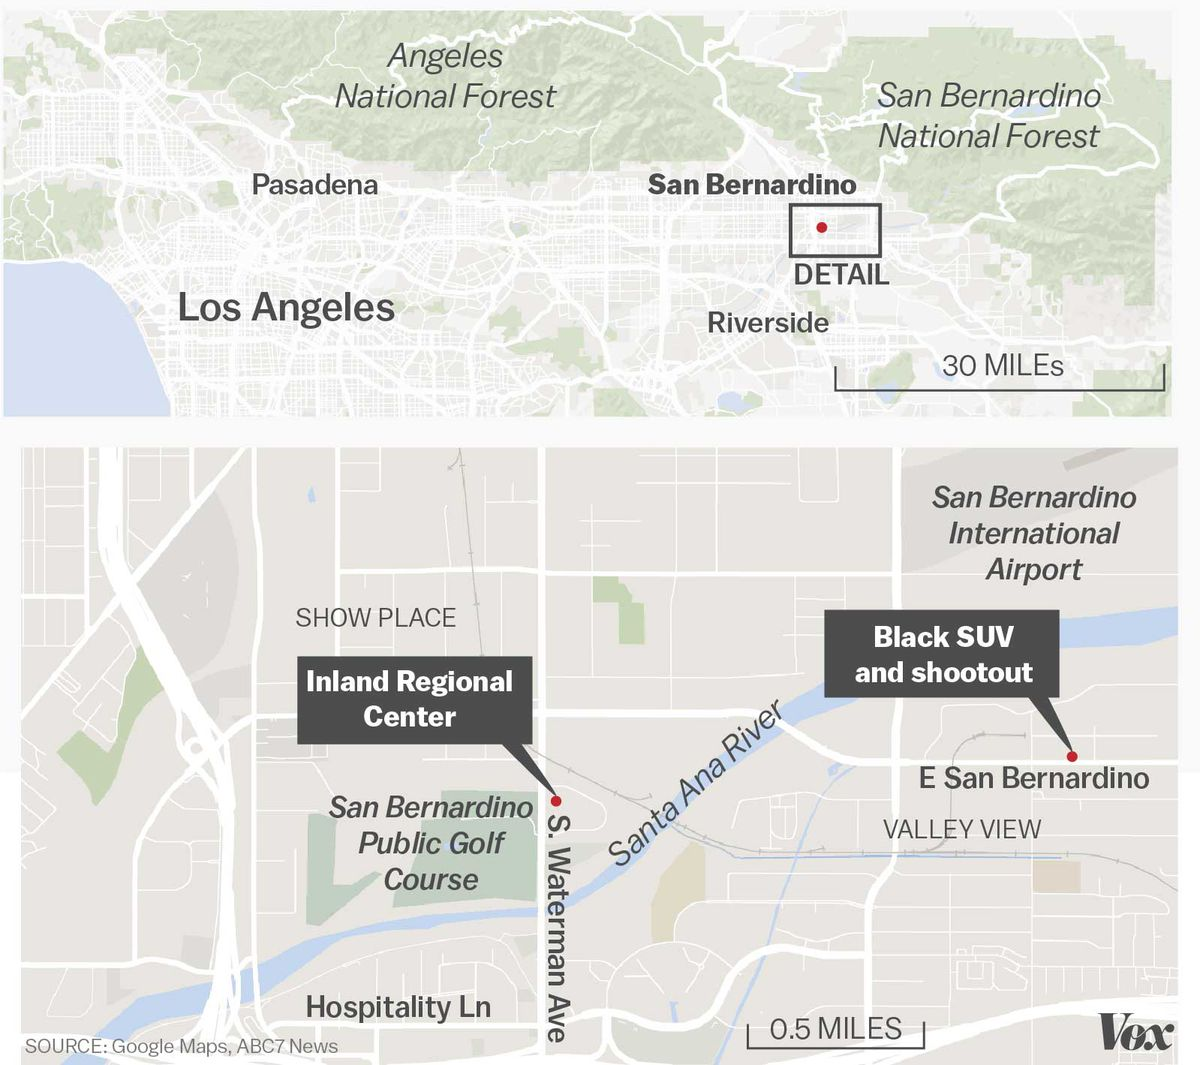 The location of the mass shooting and subsequent shootout in San Bernardino, California.